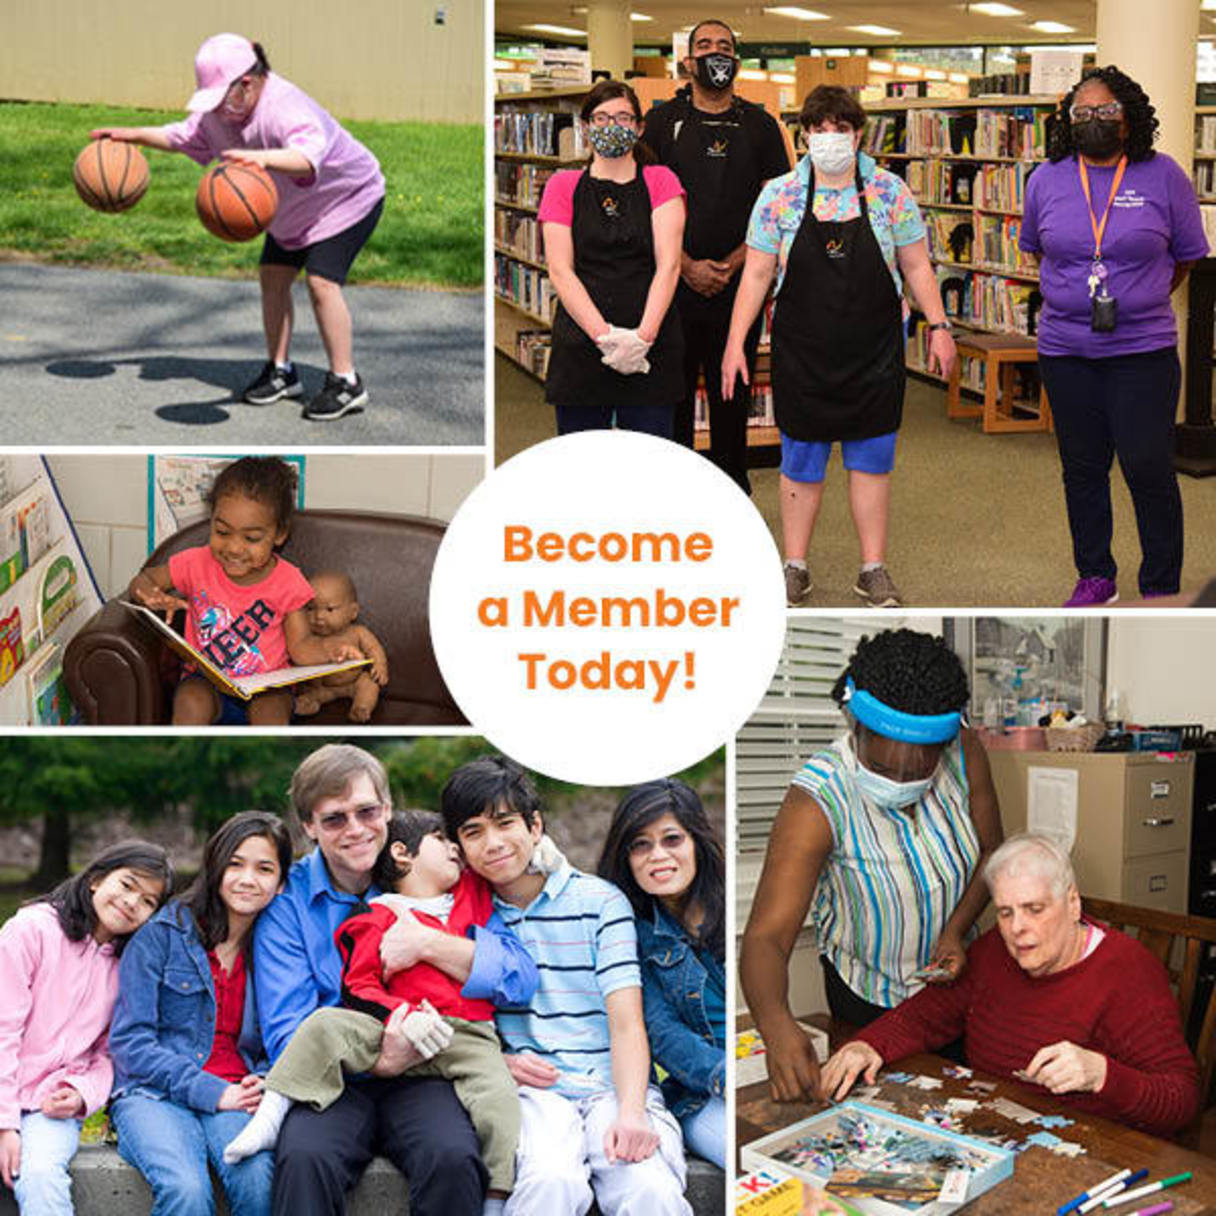 Become a member of The Arc